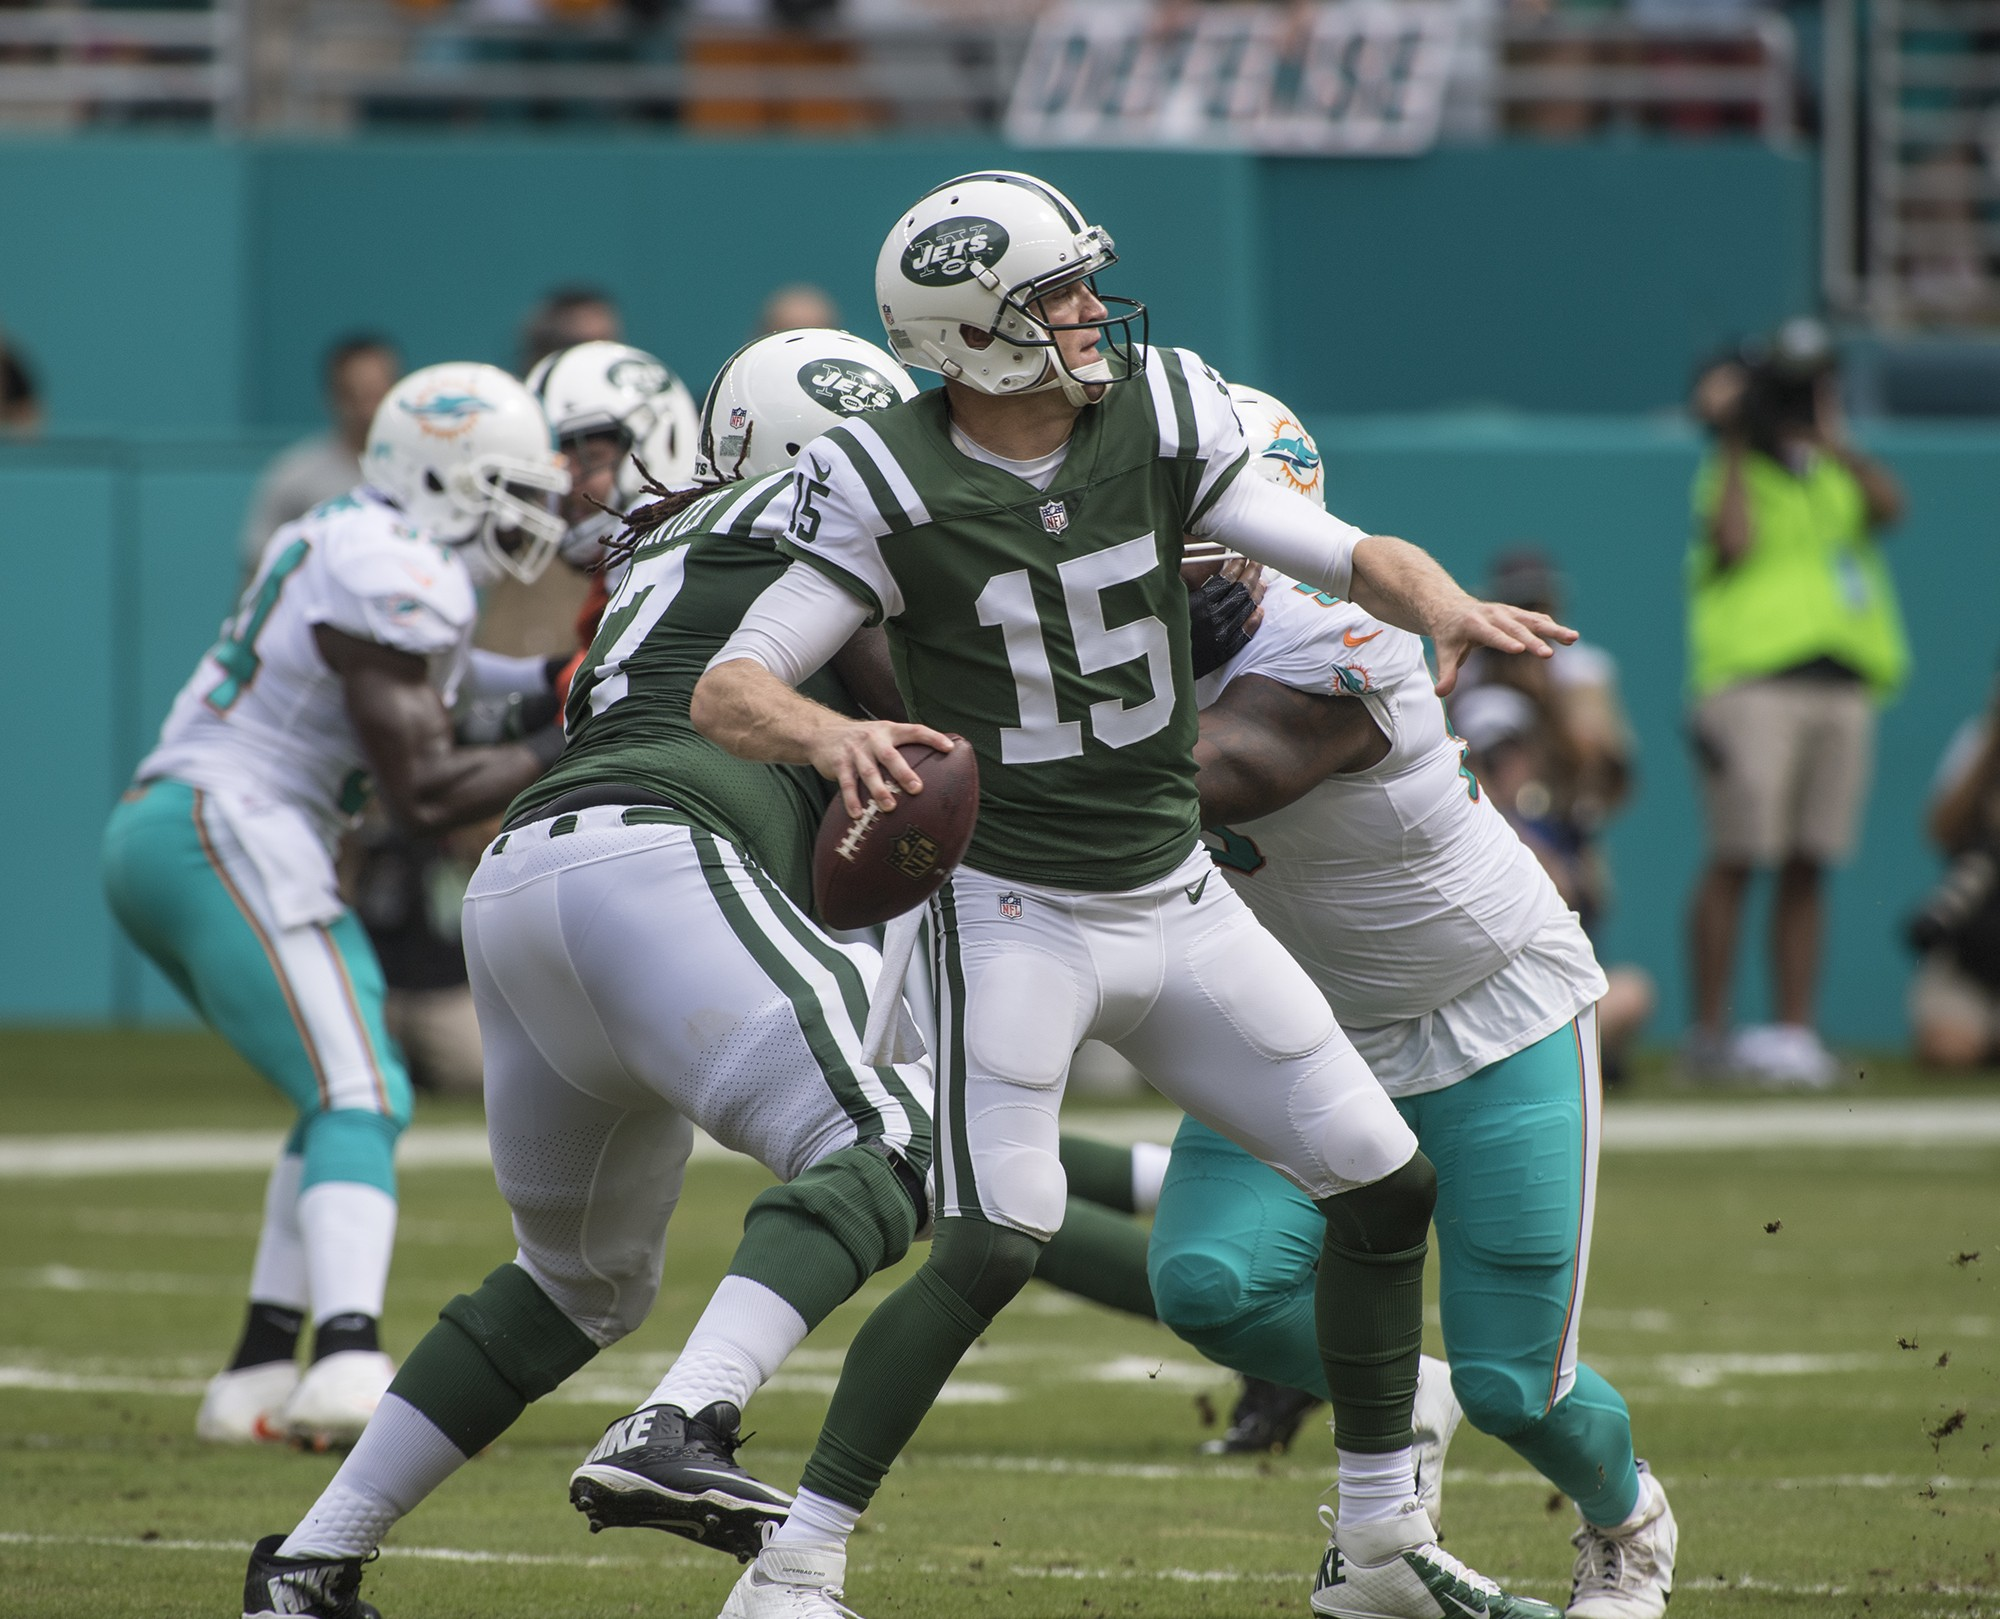 New York Jets quarterback Josh McCown (15) releases a pass in the 1st half play of an NFL football game on Sunday, Oct. 22, 2017, in Miami Gardens, Fla. The Miami Dolphins went on to defeat the New York Jets 31-28. (Donald Edgar/El Latino Digital)